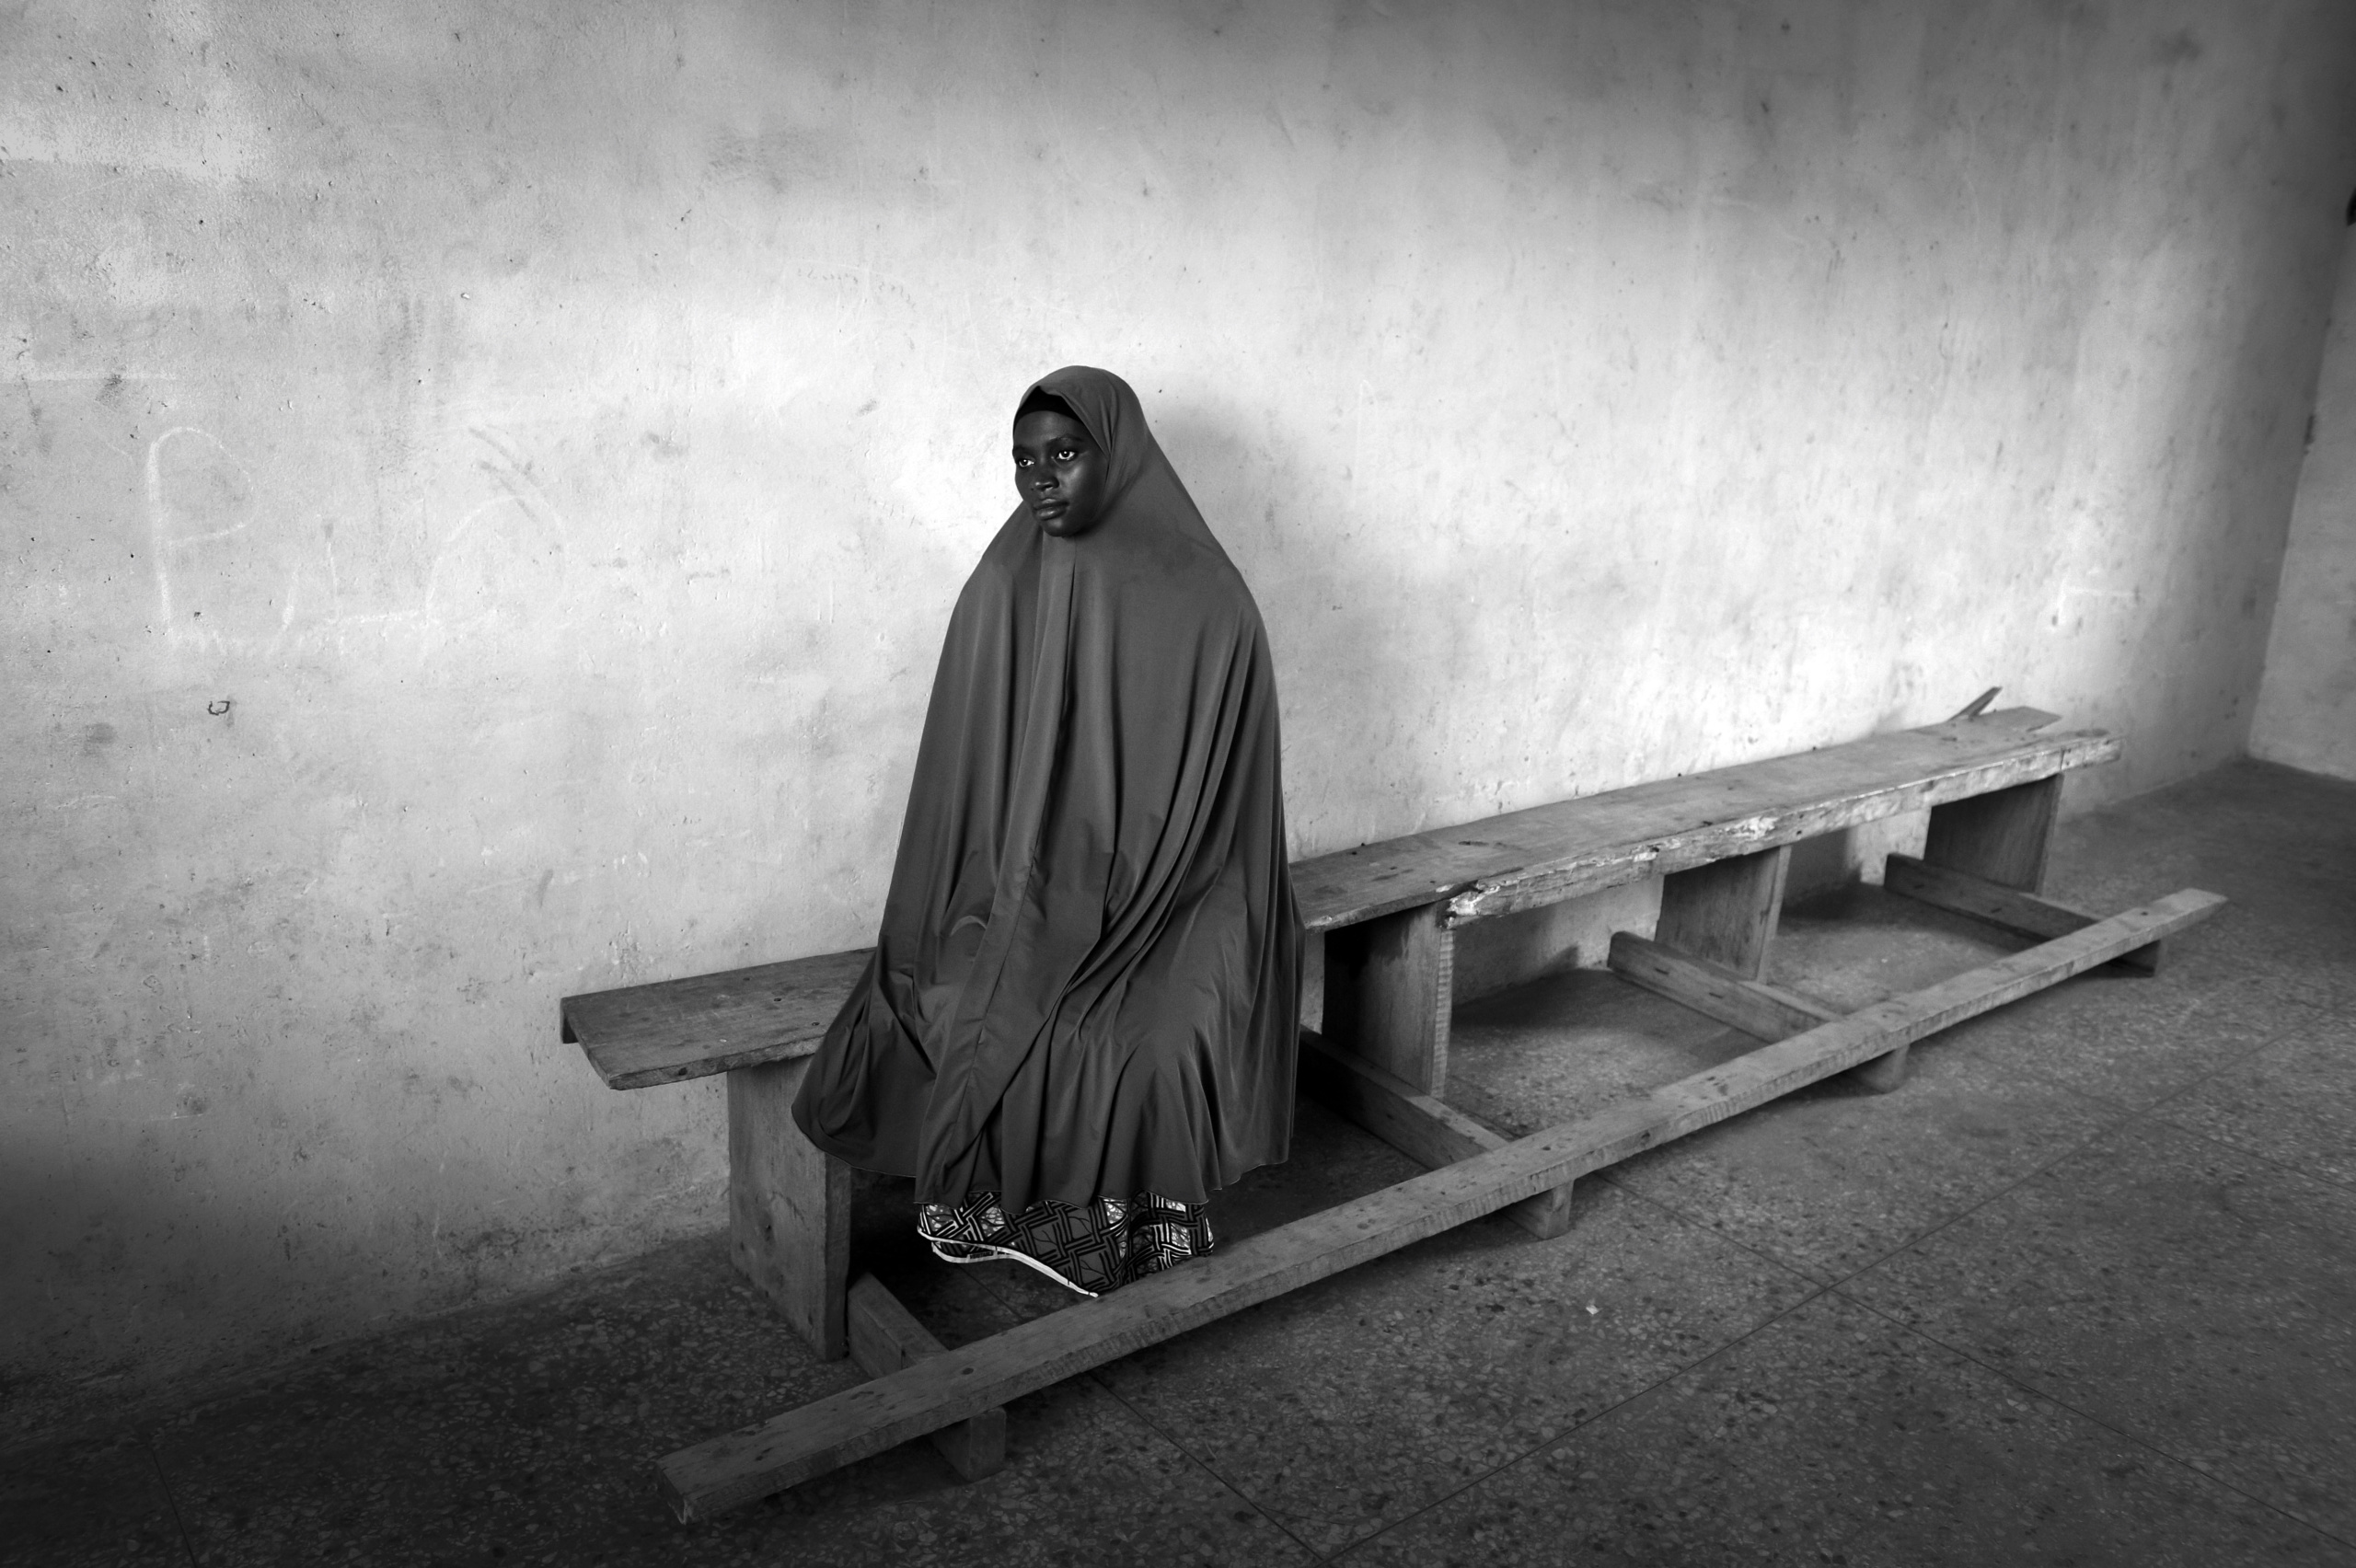 NIGERIA,Kaduna. A Muslim woman waits that her husband picks her up having taken lessons in a Koranic school in a Muslim district of Kaduna. Nearly 4,000 people have died in Nigeria due to the violent conflict over the past decade.  The economic and ethnic conflict in the northern states has a religious dimension. It is only with true governance that these conflicting differences could be managed. As elsewhere in Nigeria, residents accuse both local and state government officials for promoting identity-based divisions to advance their own political agendas. I was commissioned to the City of Kaduna, to expose those individuals who are truly working to make a difference in Nigeria; those individuals who are leading future generations to inspire hope and empowerment of the local communities.